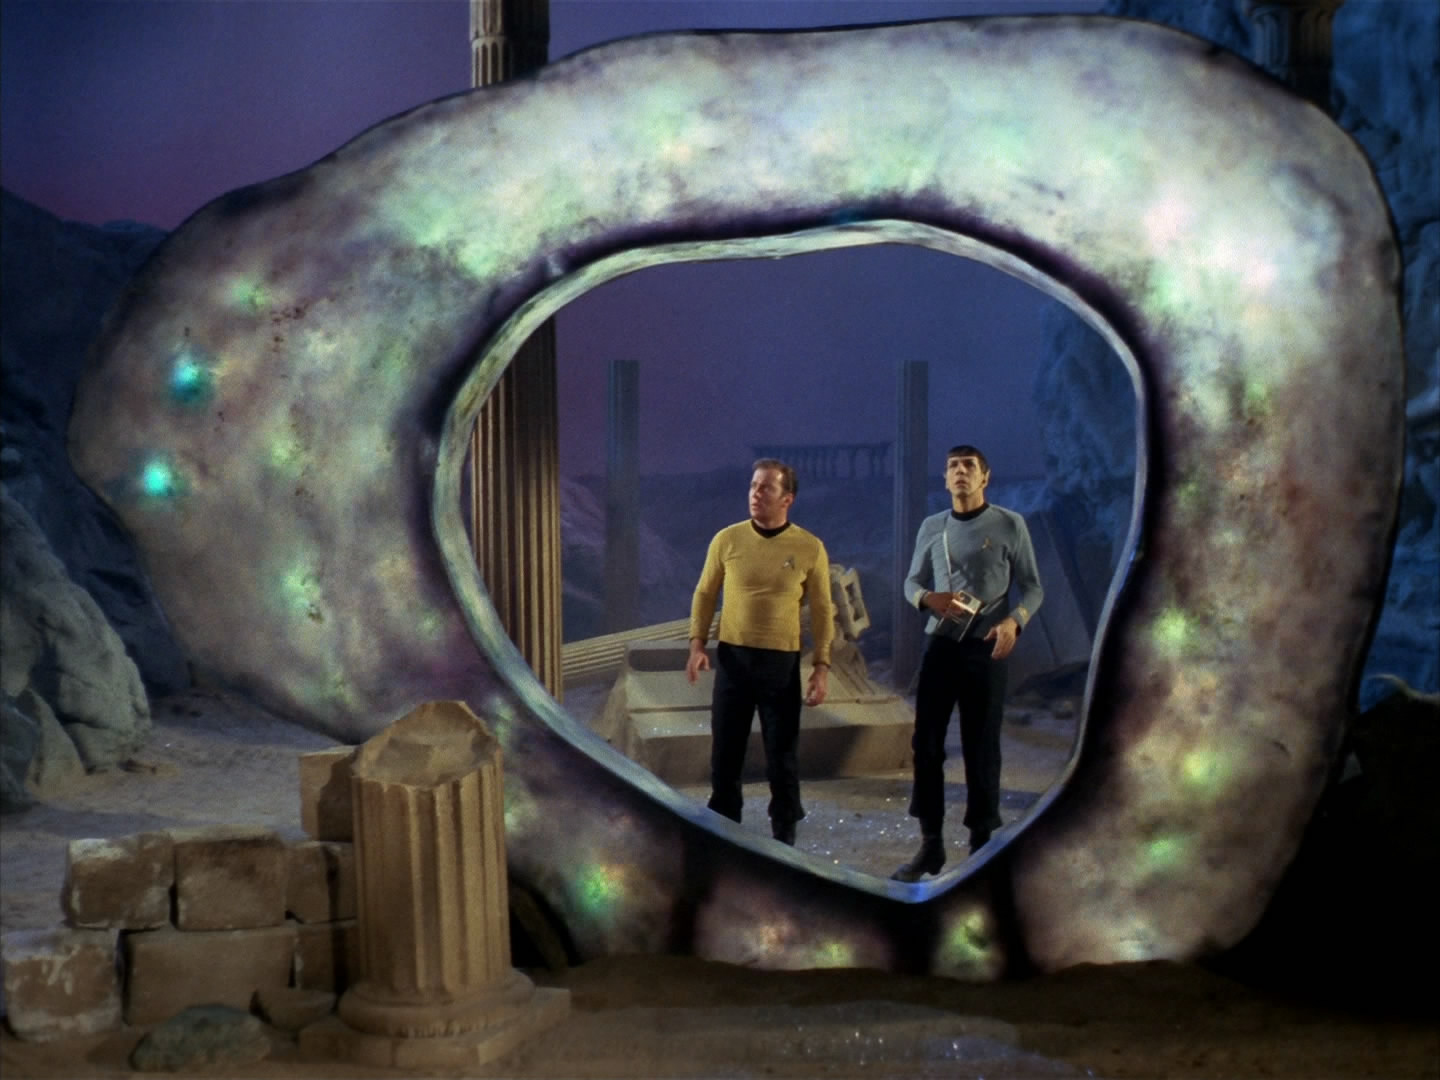 Kirk and Spock staring in awe at an ancient glowing alien artifact.